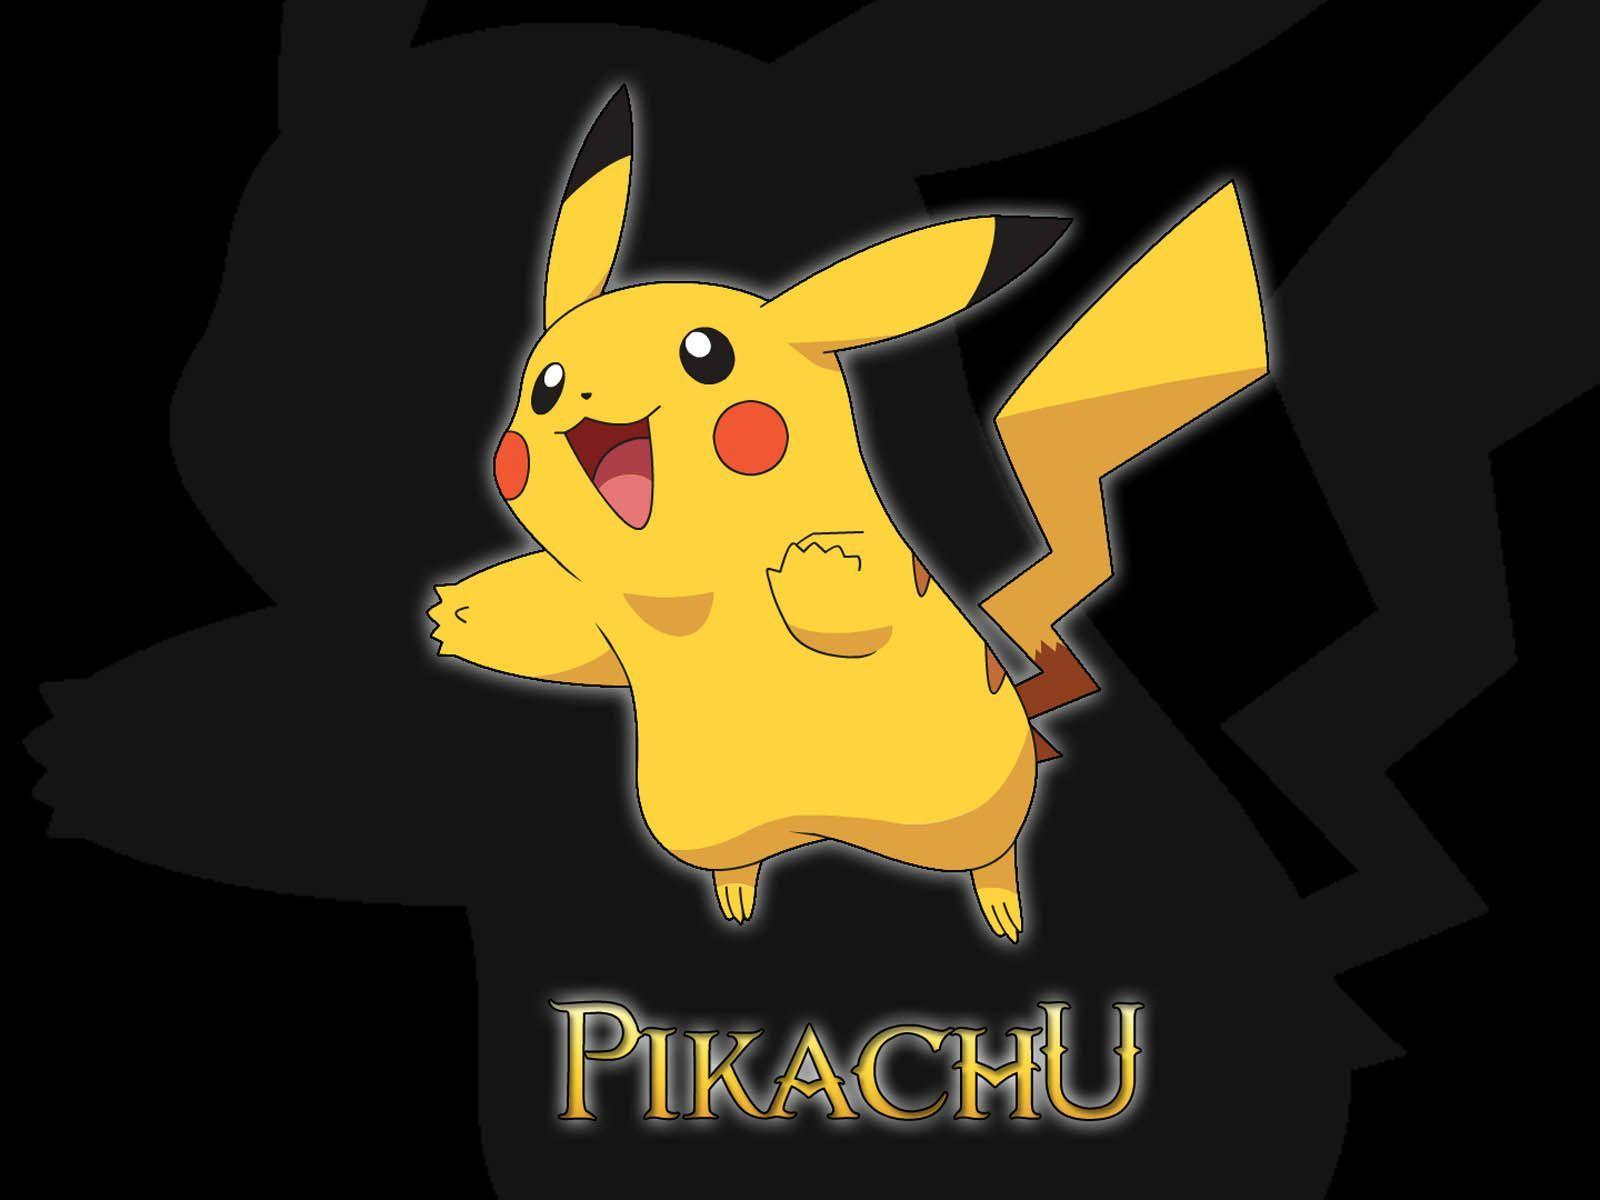 Image - Pikachu Pokemon Wallpapers 6.jpg - The Chaos Theatre Wiki